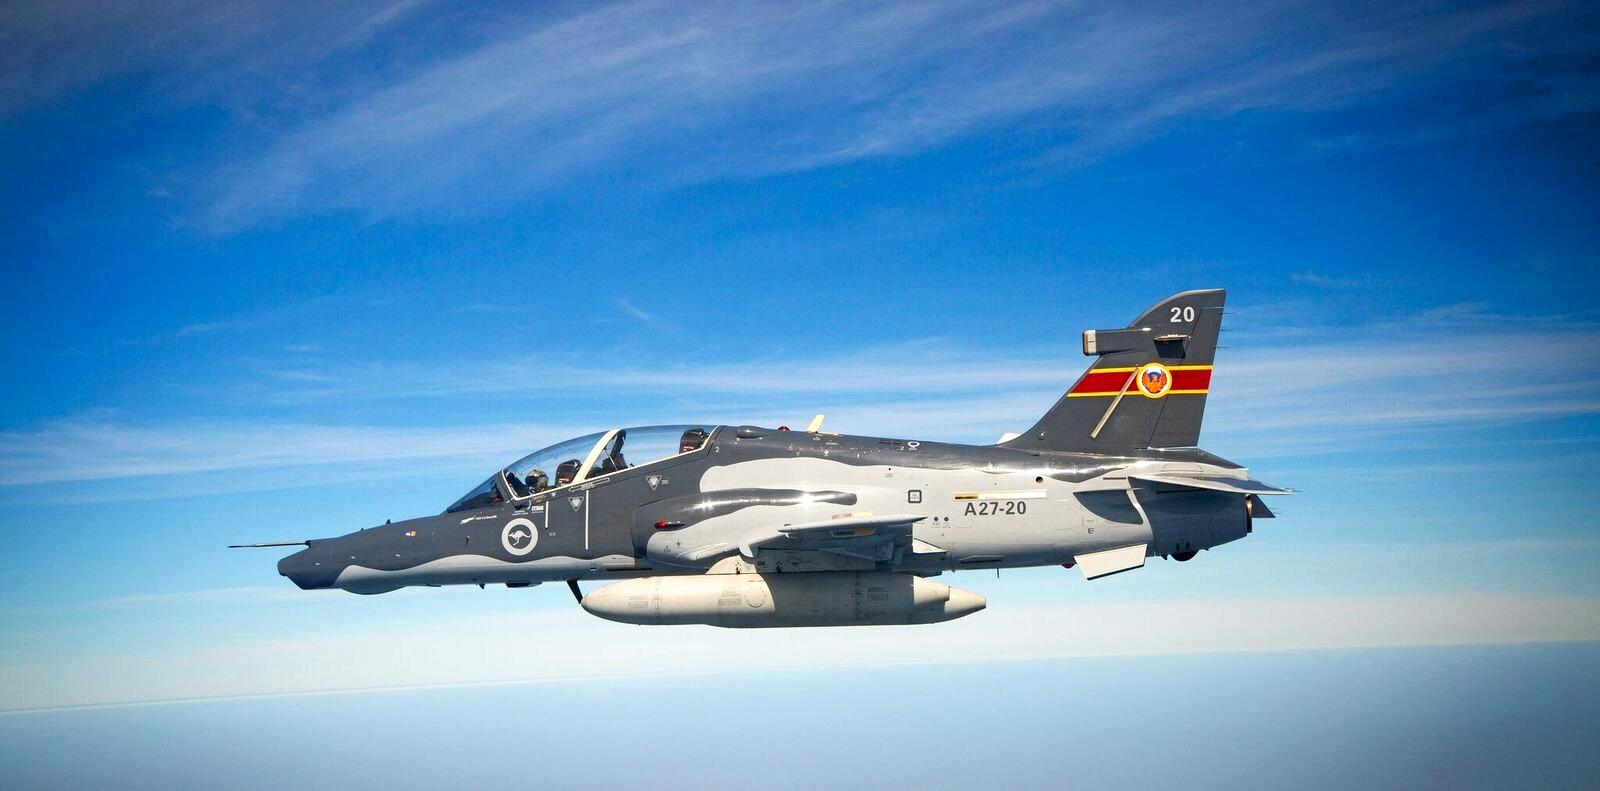 A RAAF Hawk 127 will be doing flying demonstrations at the Lismore Aviation Expo.